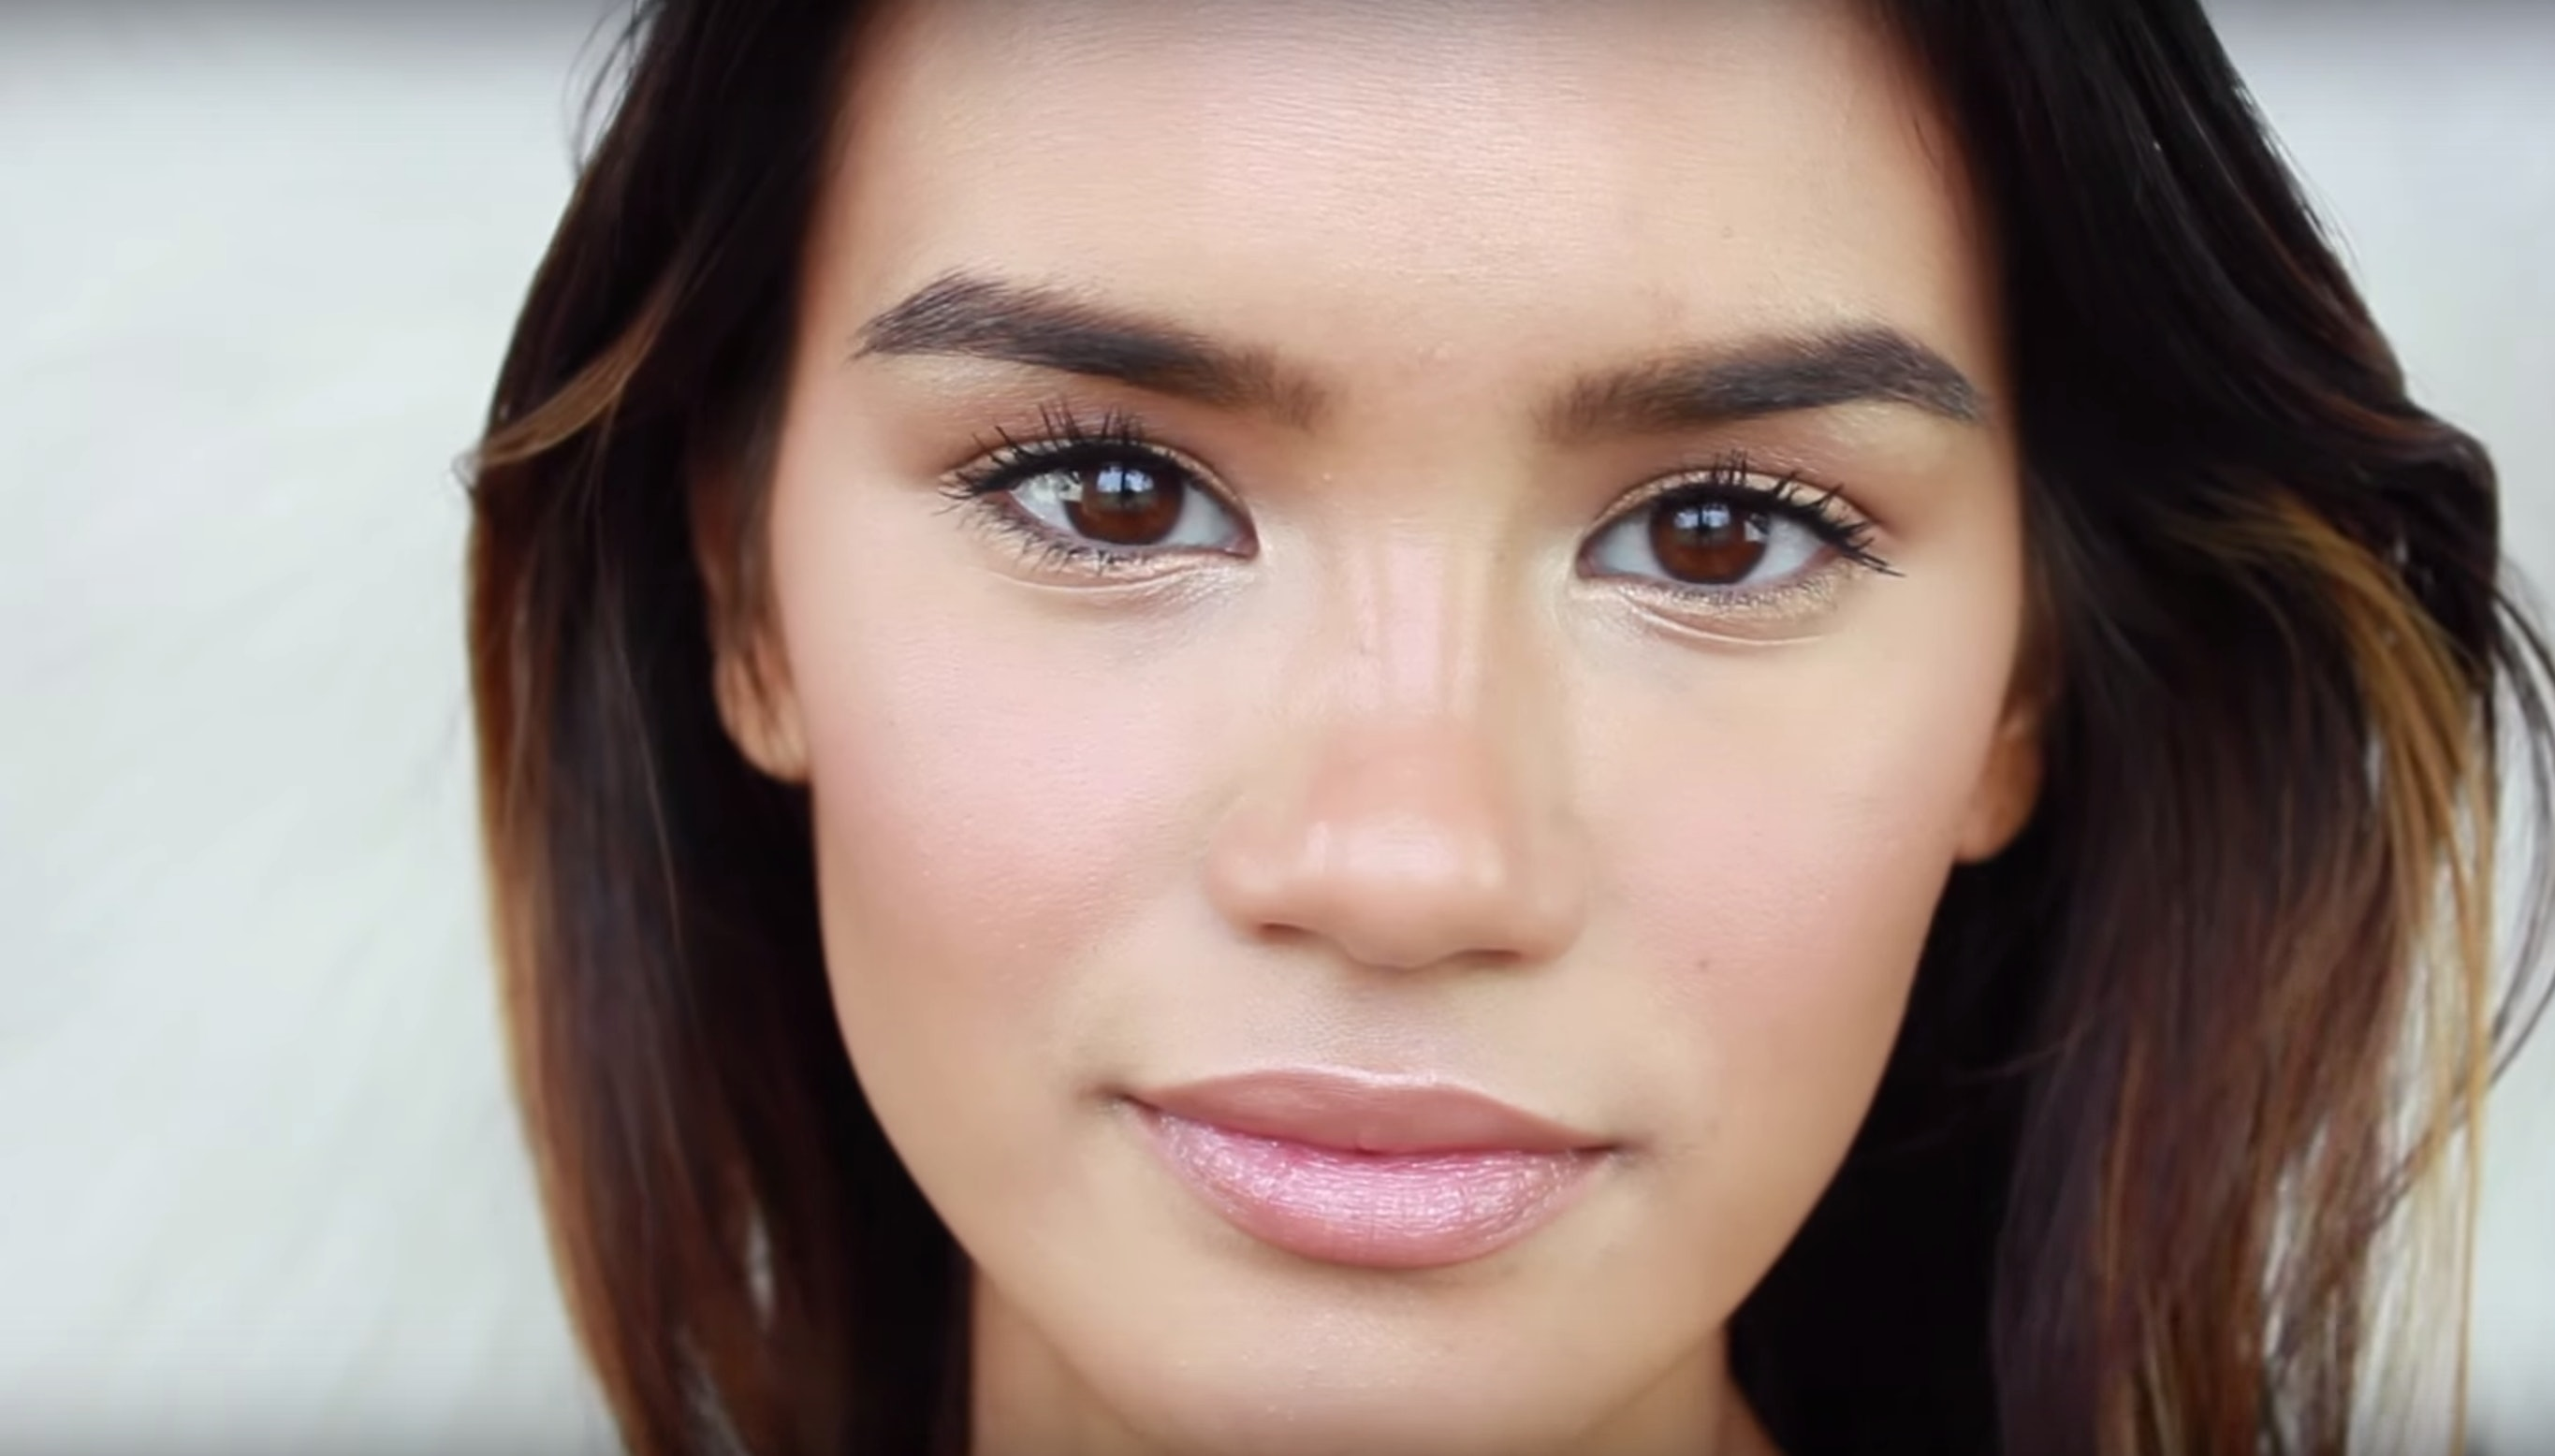 11 2016 Back To School Makeup Trends To Brush Up On Before Classes